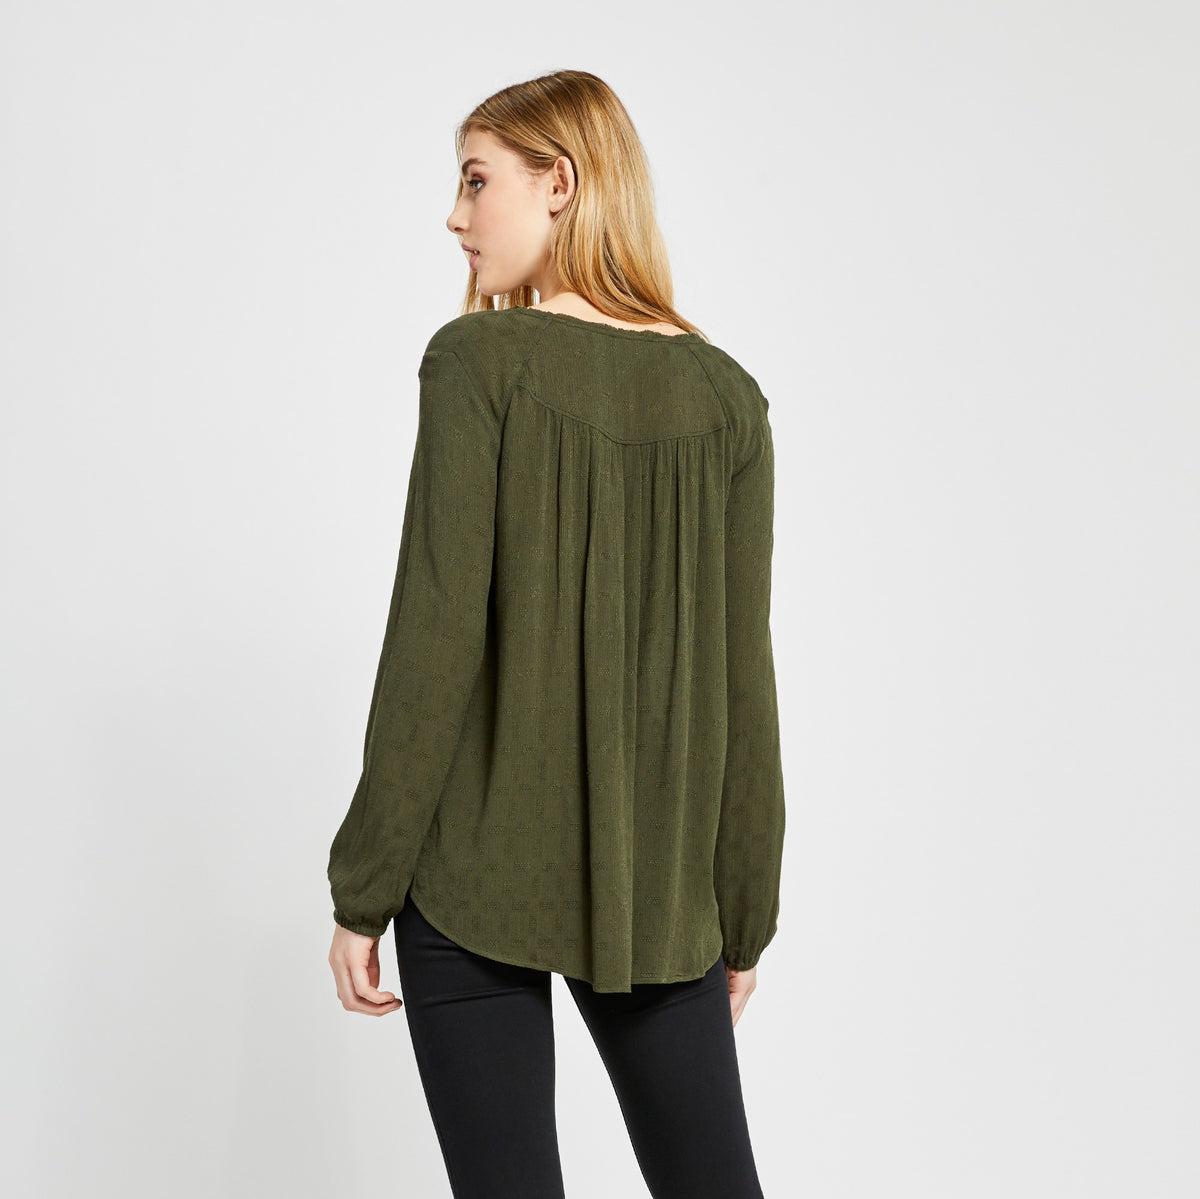 GENTLE FAWN Emma Top